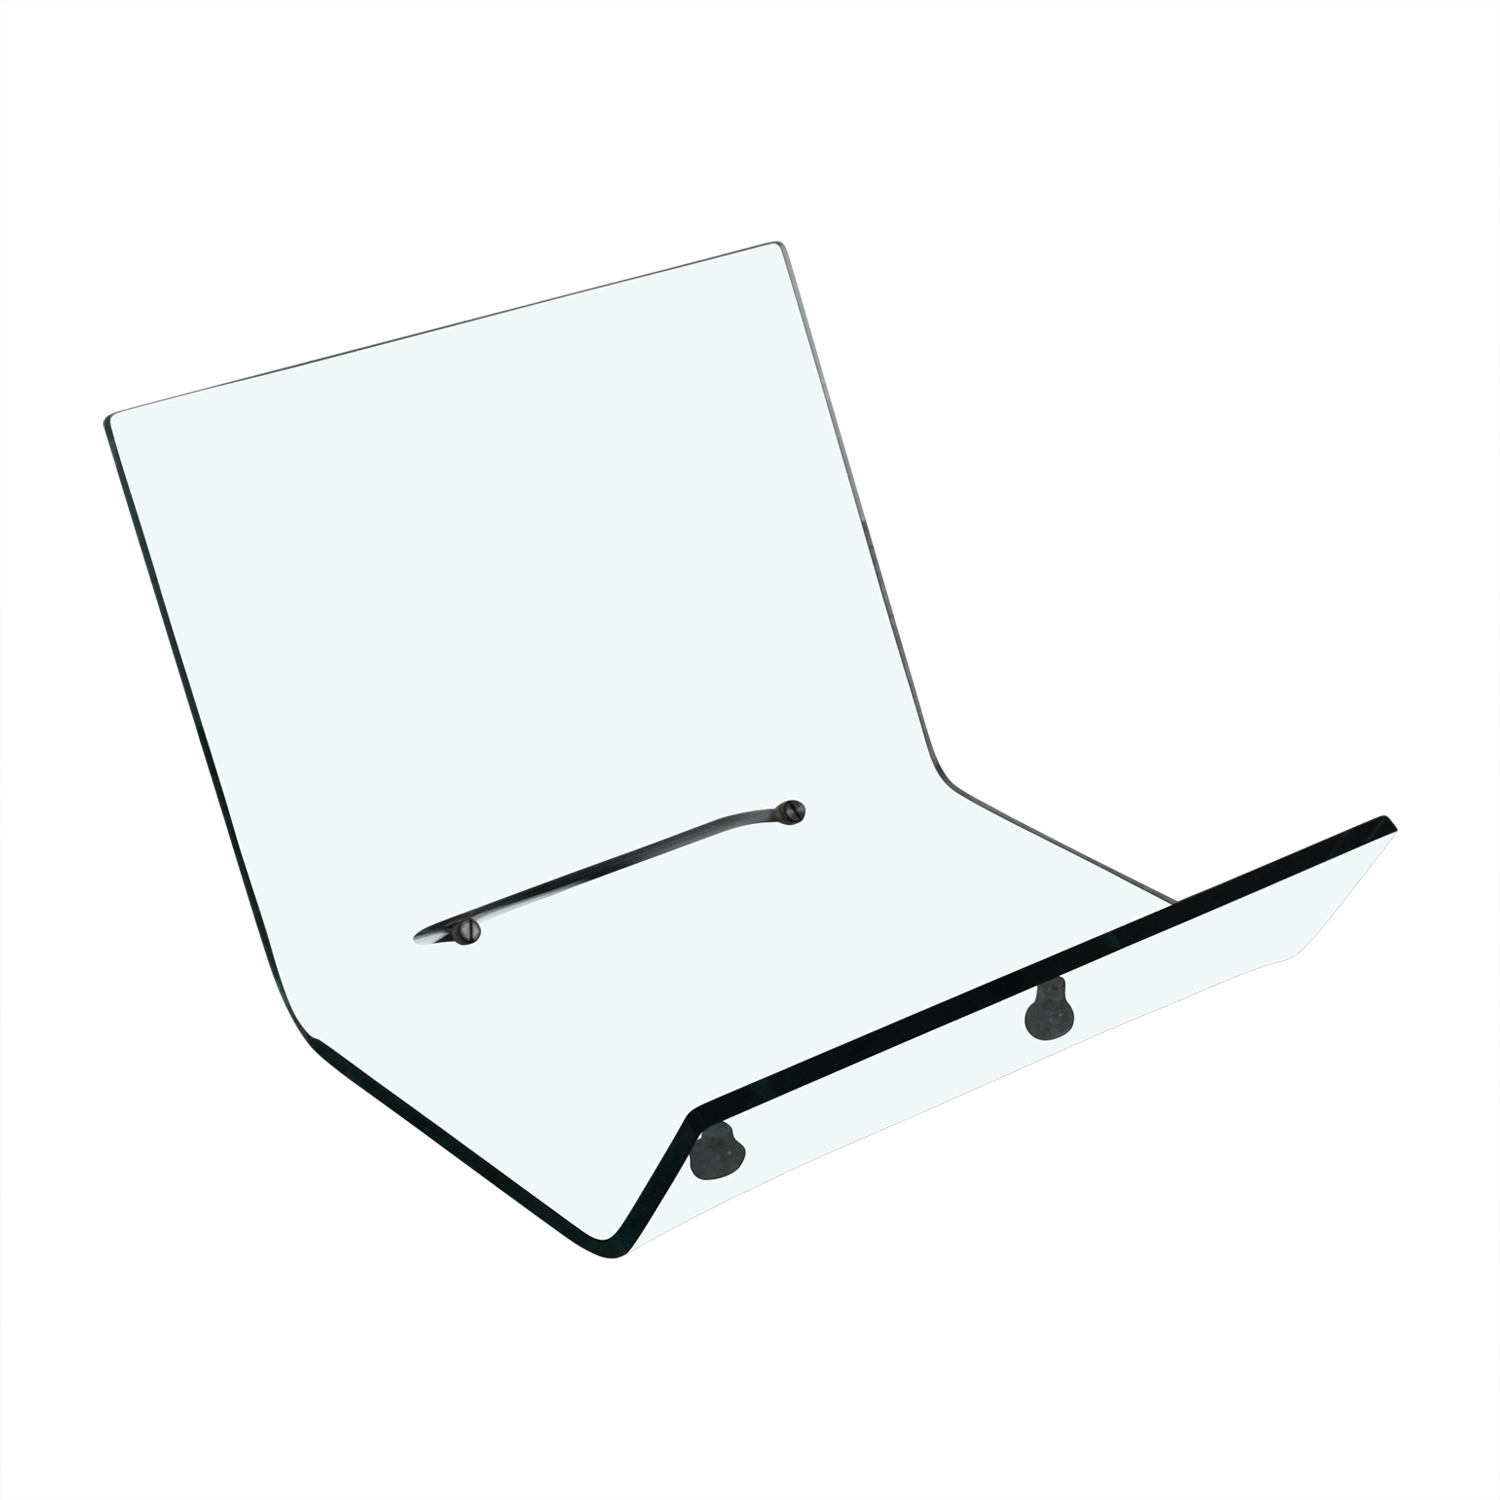 buy Fiam Ghost Magazine Rack Fiam Decor